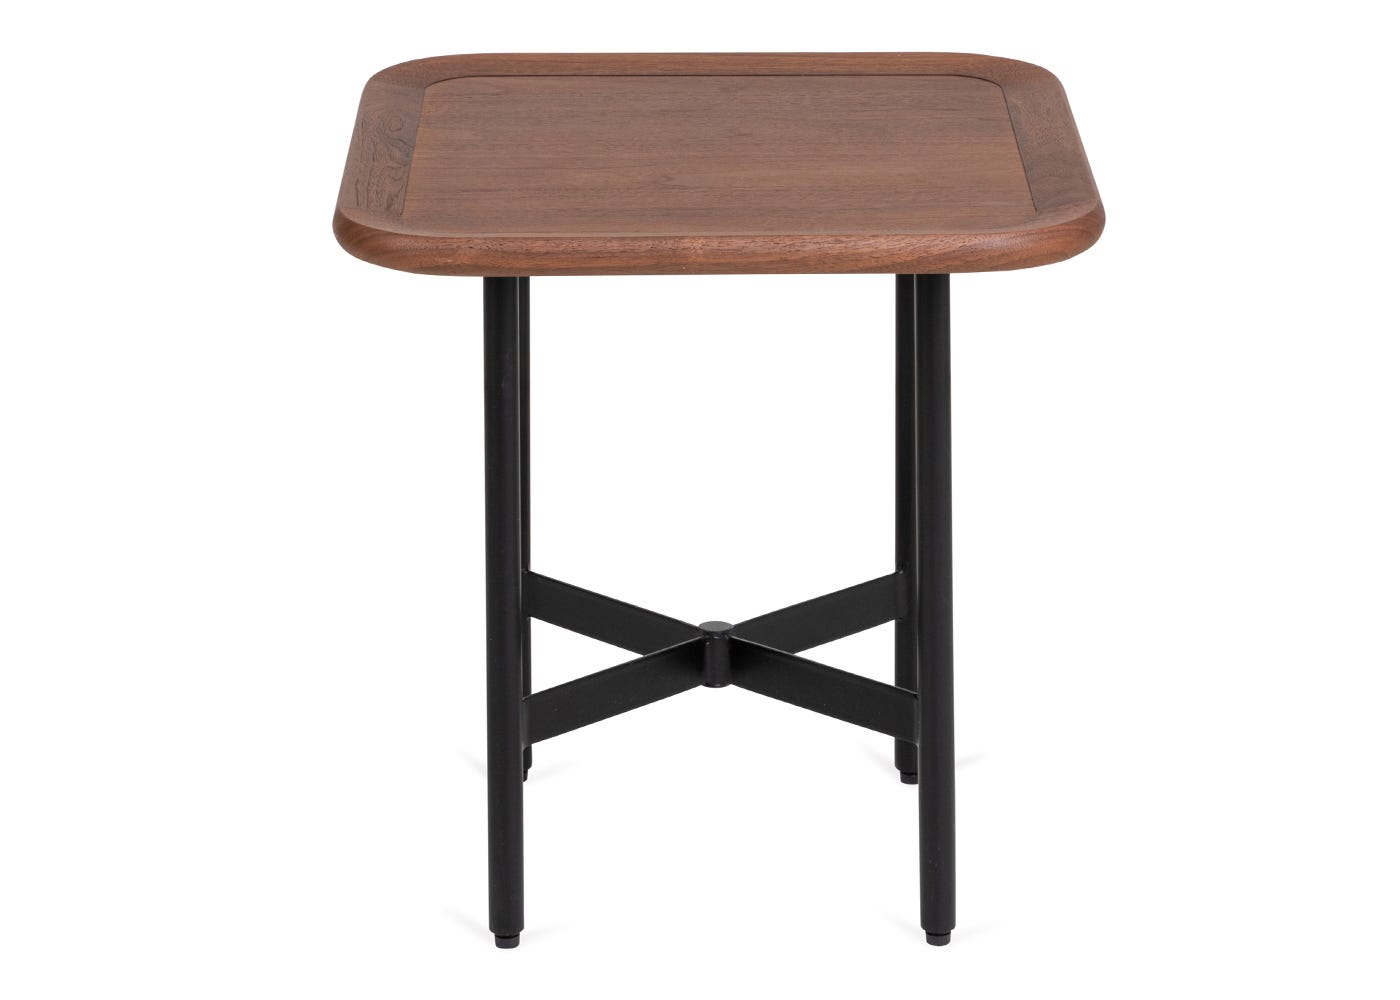 Heal's Emerson Square Side Table